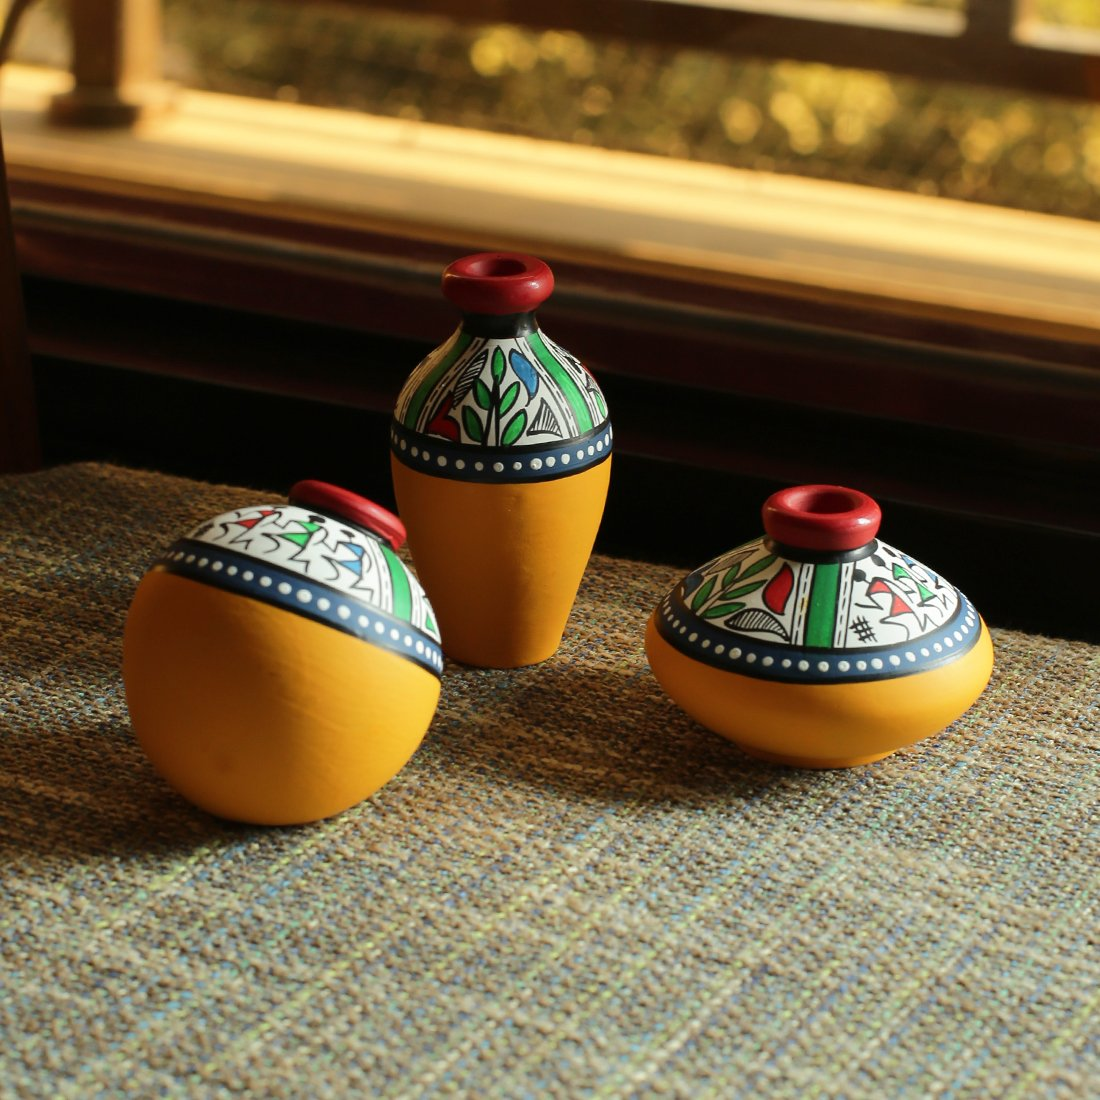 Unravel India Teracotta giallo Warli dipinto a mano decorativo pot (set of 3)